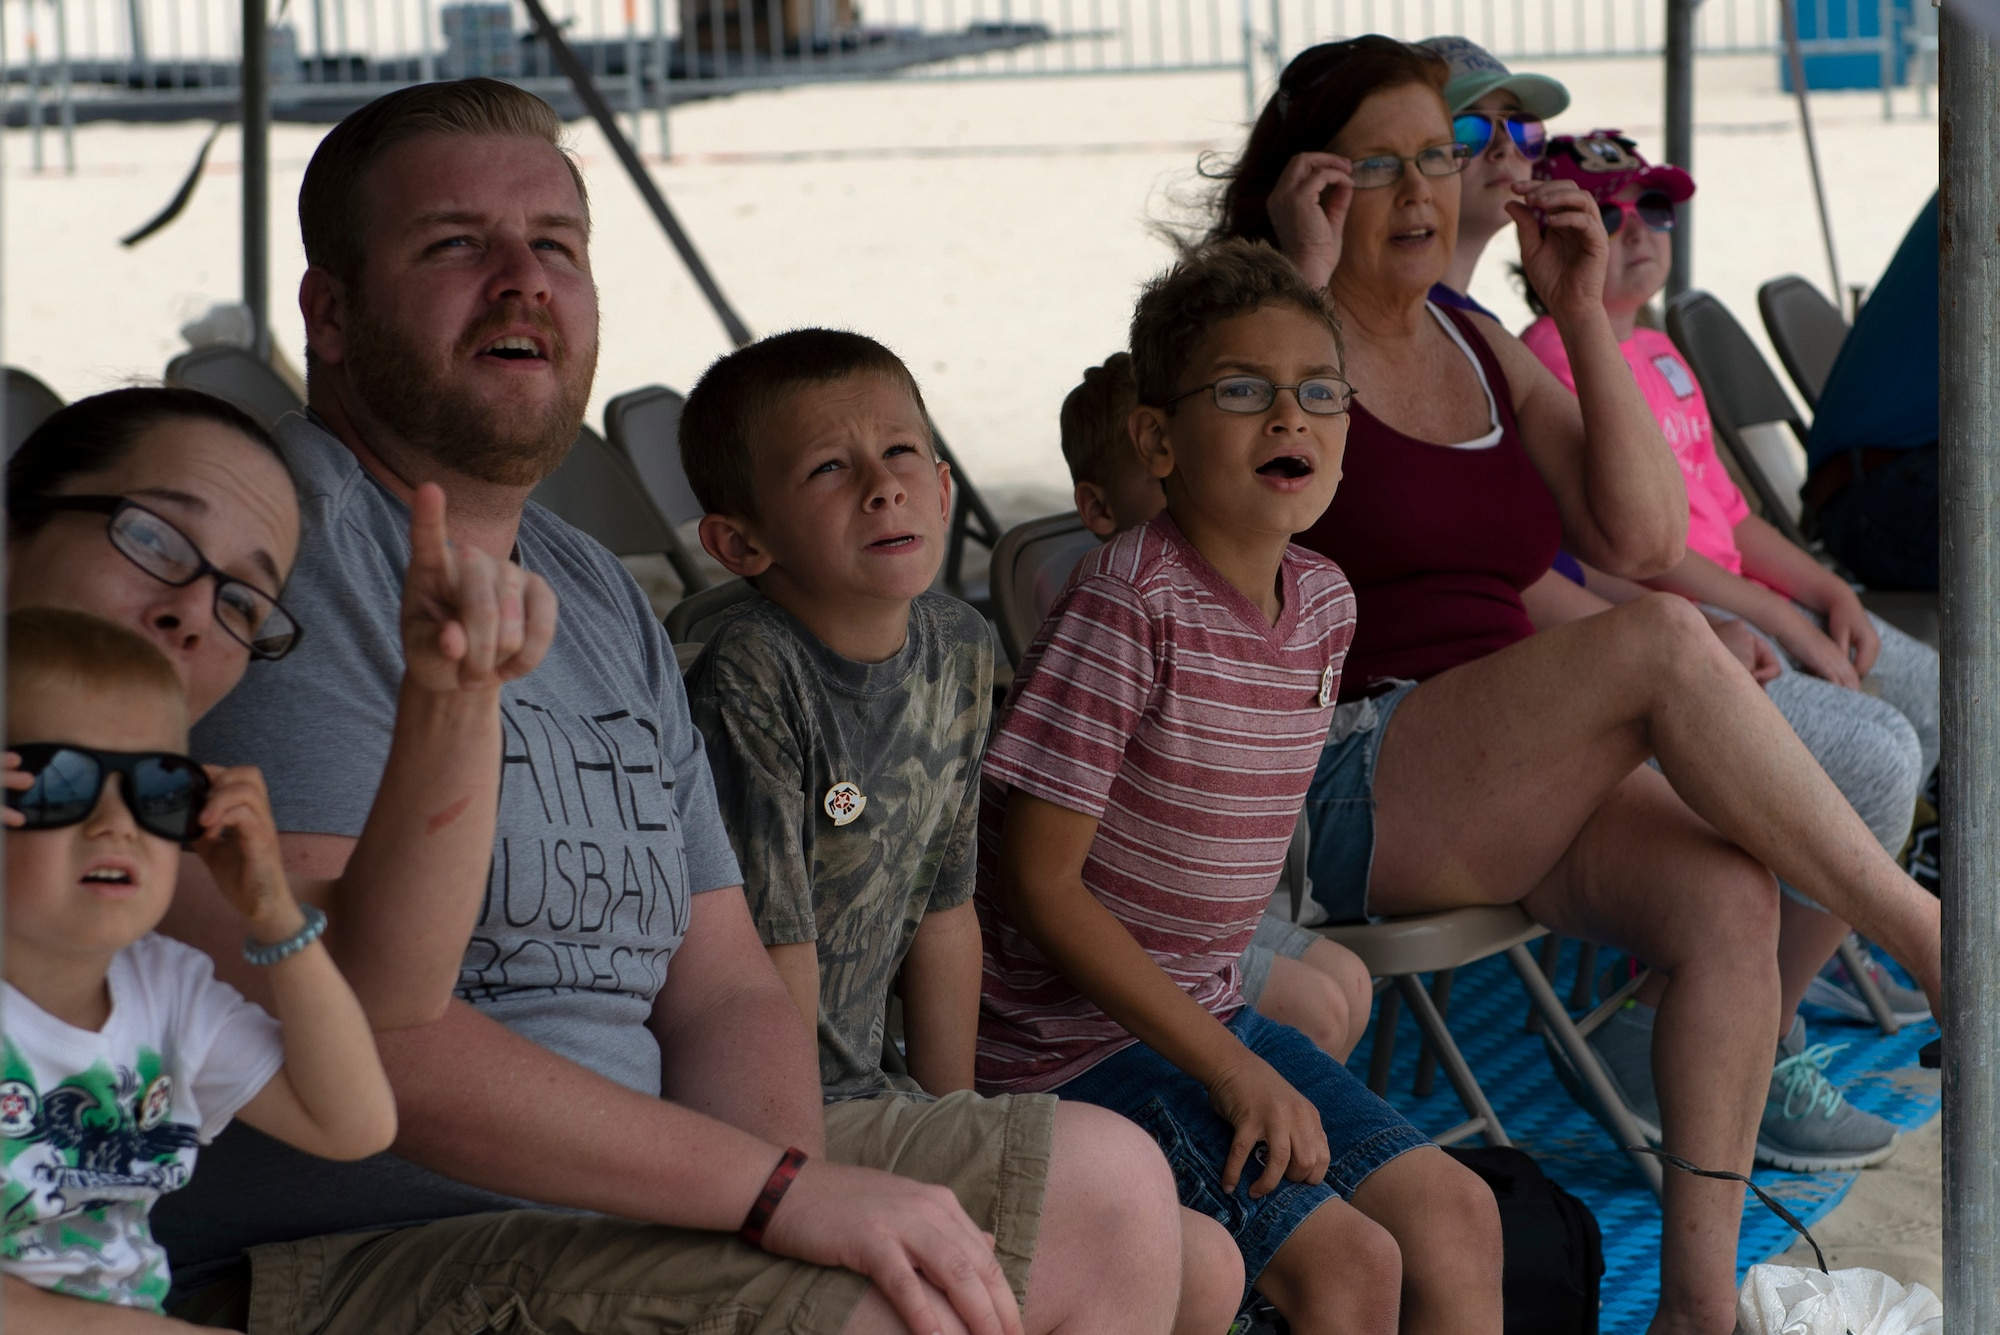 Make-A-Wish families watch the Thunderbirds fly in a practice session for the Keesler and Biloxi Air Show in Biloxi, Mississippi, May 3, 2019. After the practice session, the families were able to meet and get photos with the Thunderbird team. (U.S. Air Force photo by Airman 1st Class Kimberly L. Mueller)